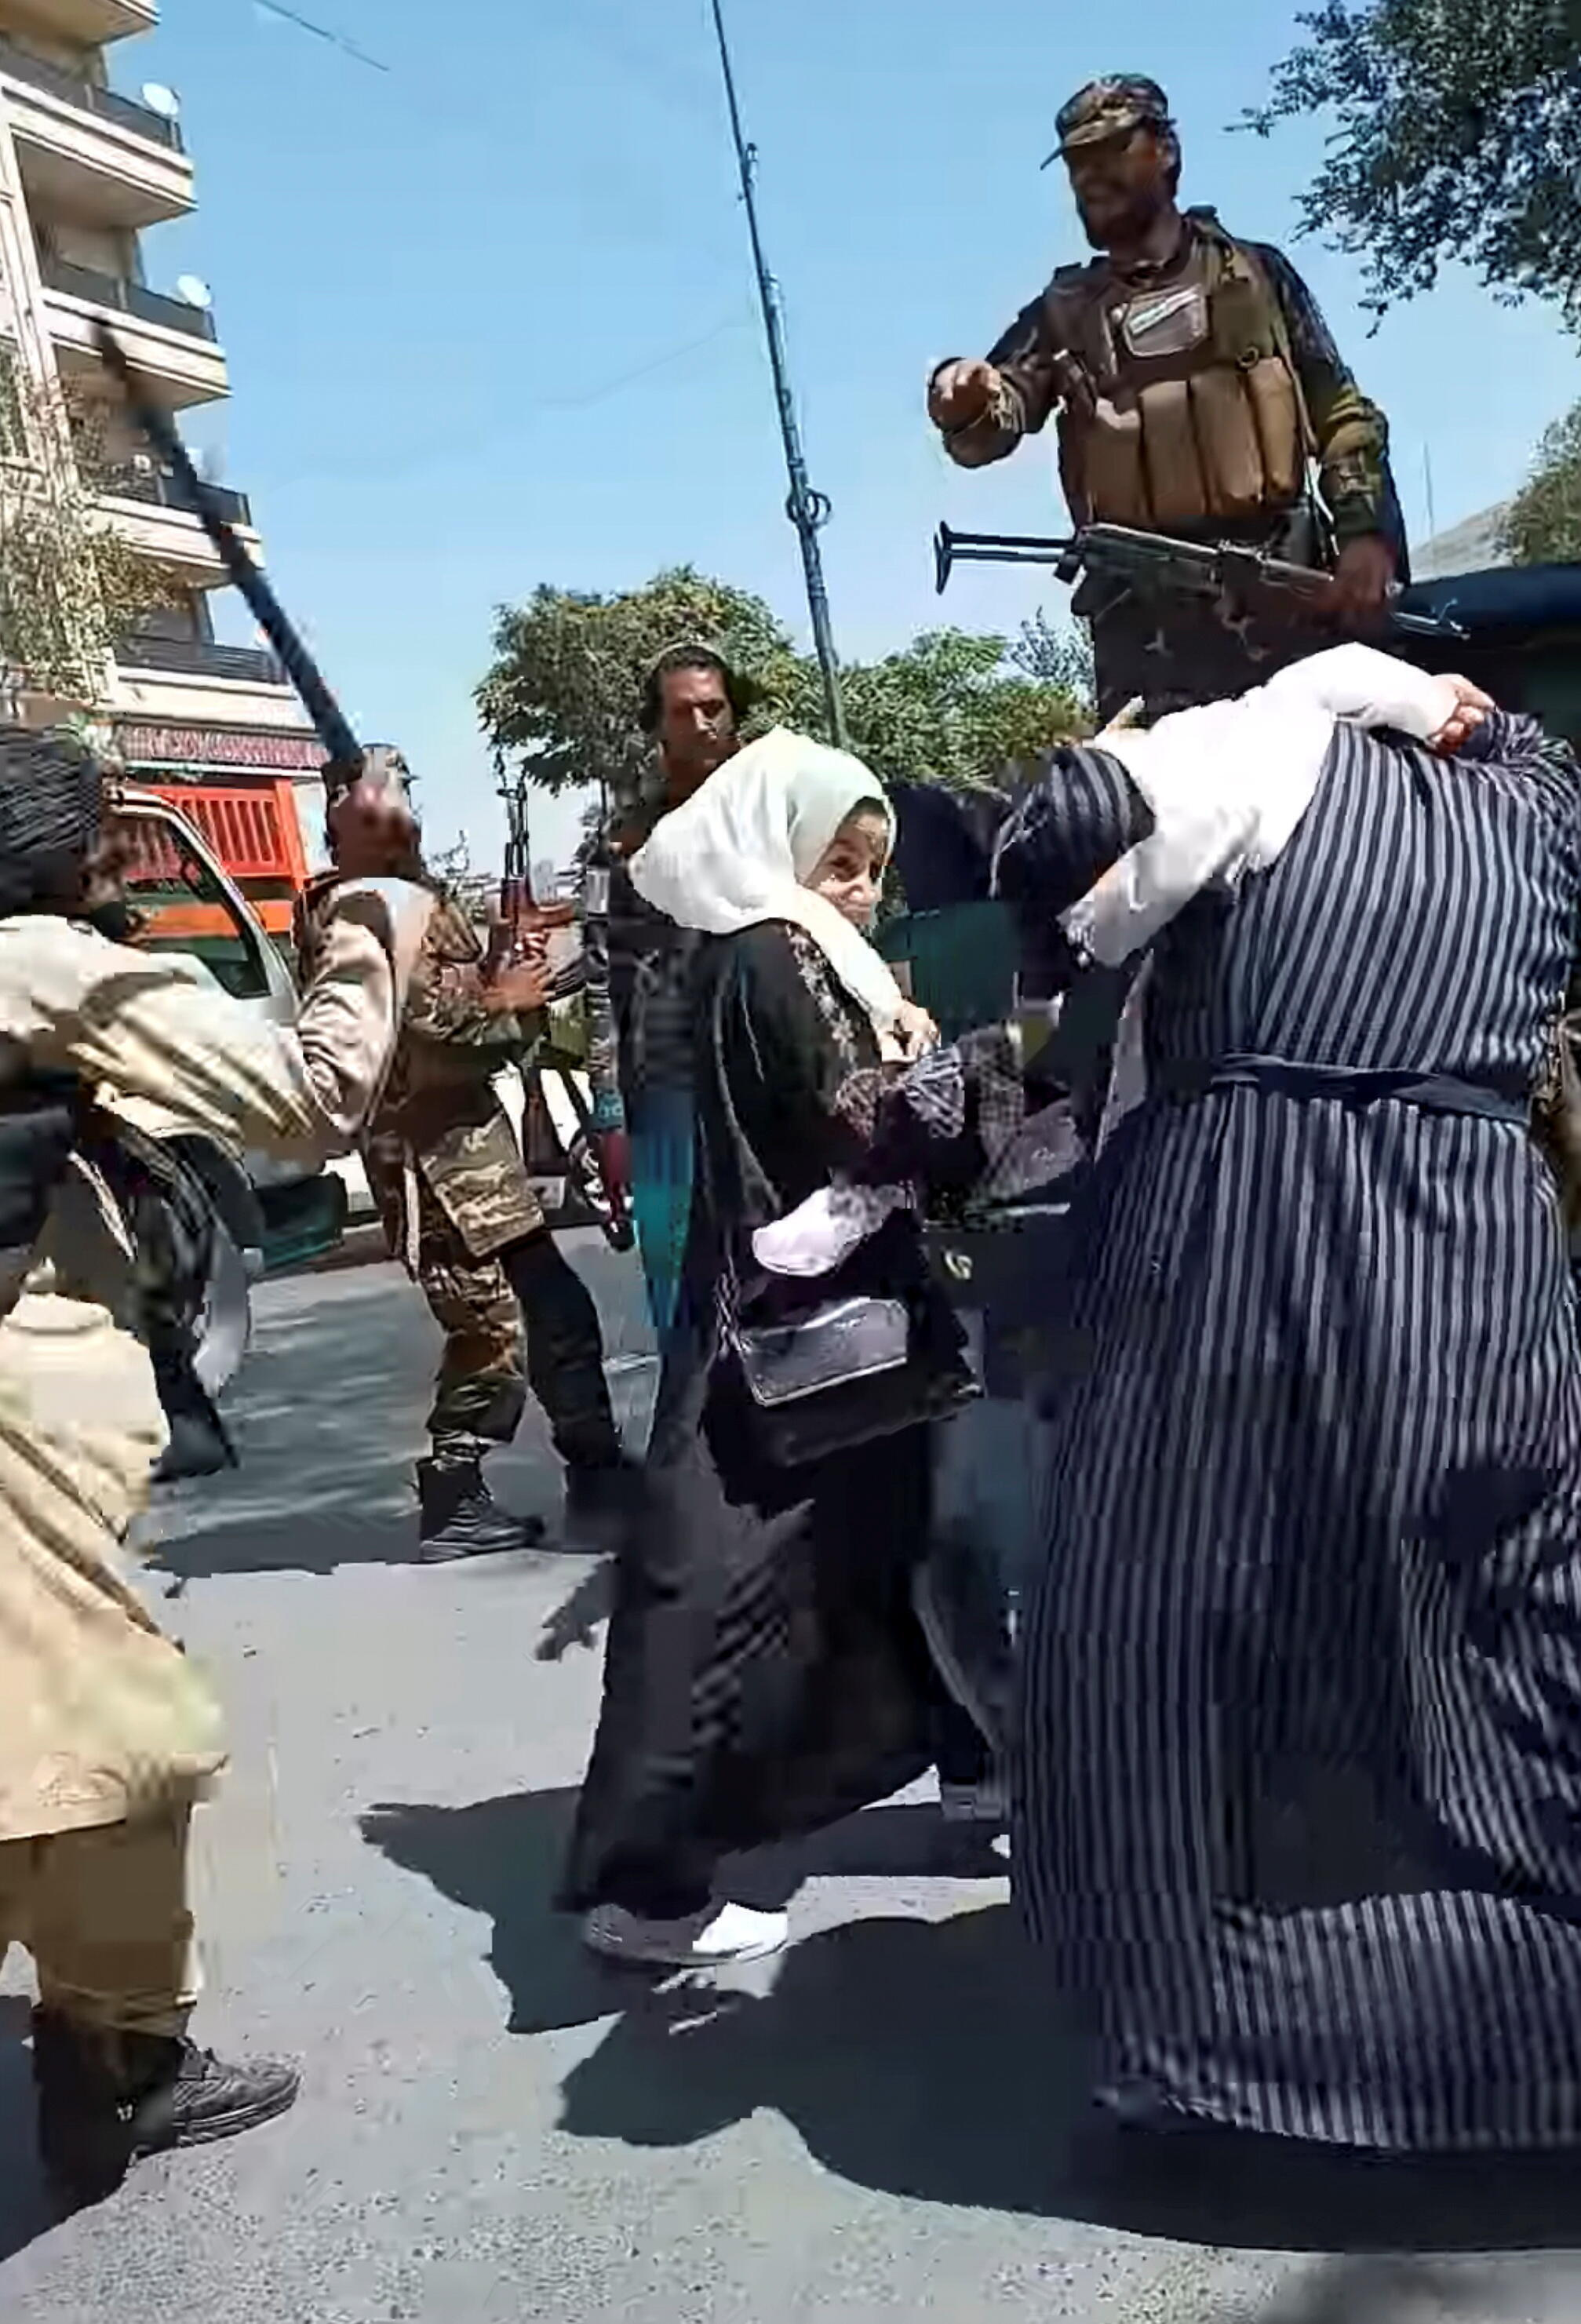 A Taliban soldier beats women protesting in Kabul, September 8, 2021 in this picture obtained from social media video.